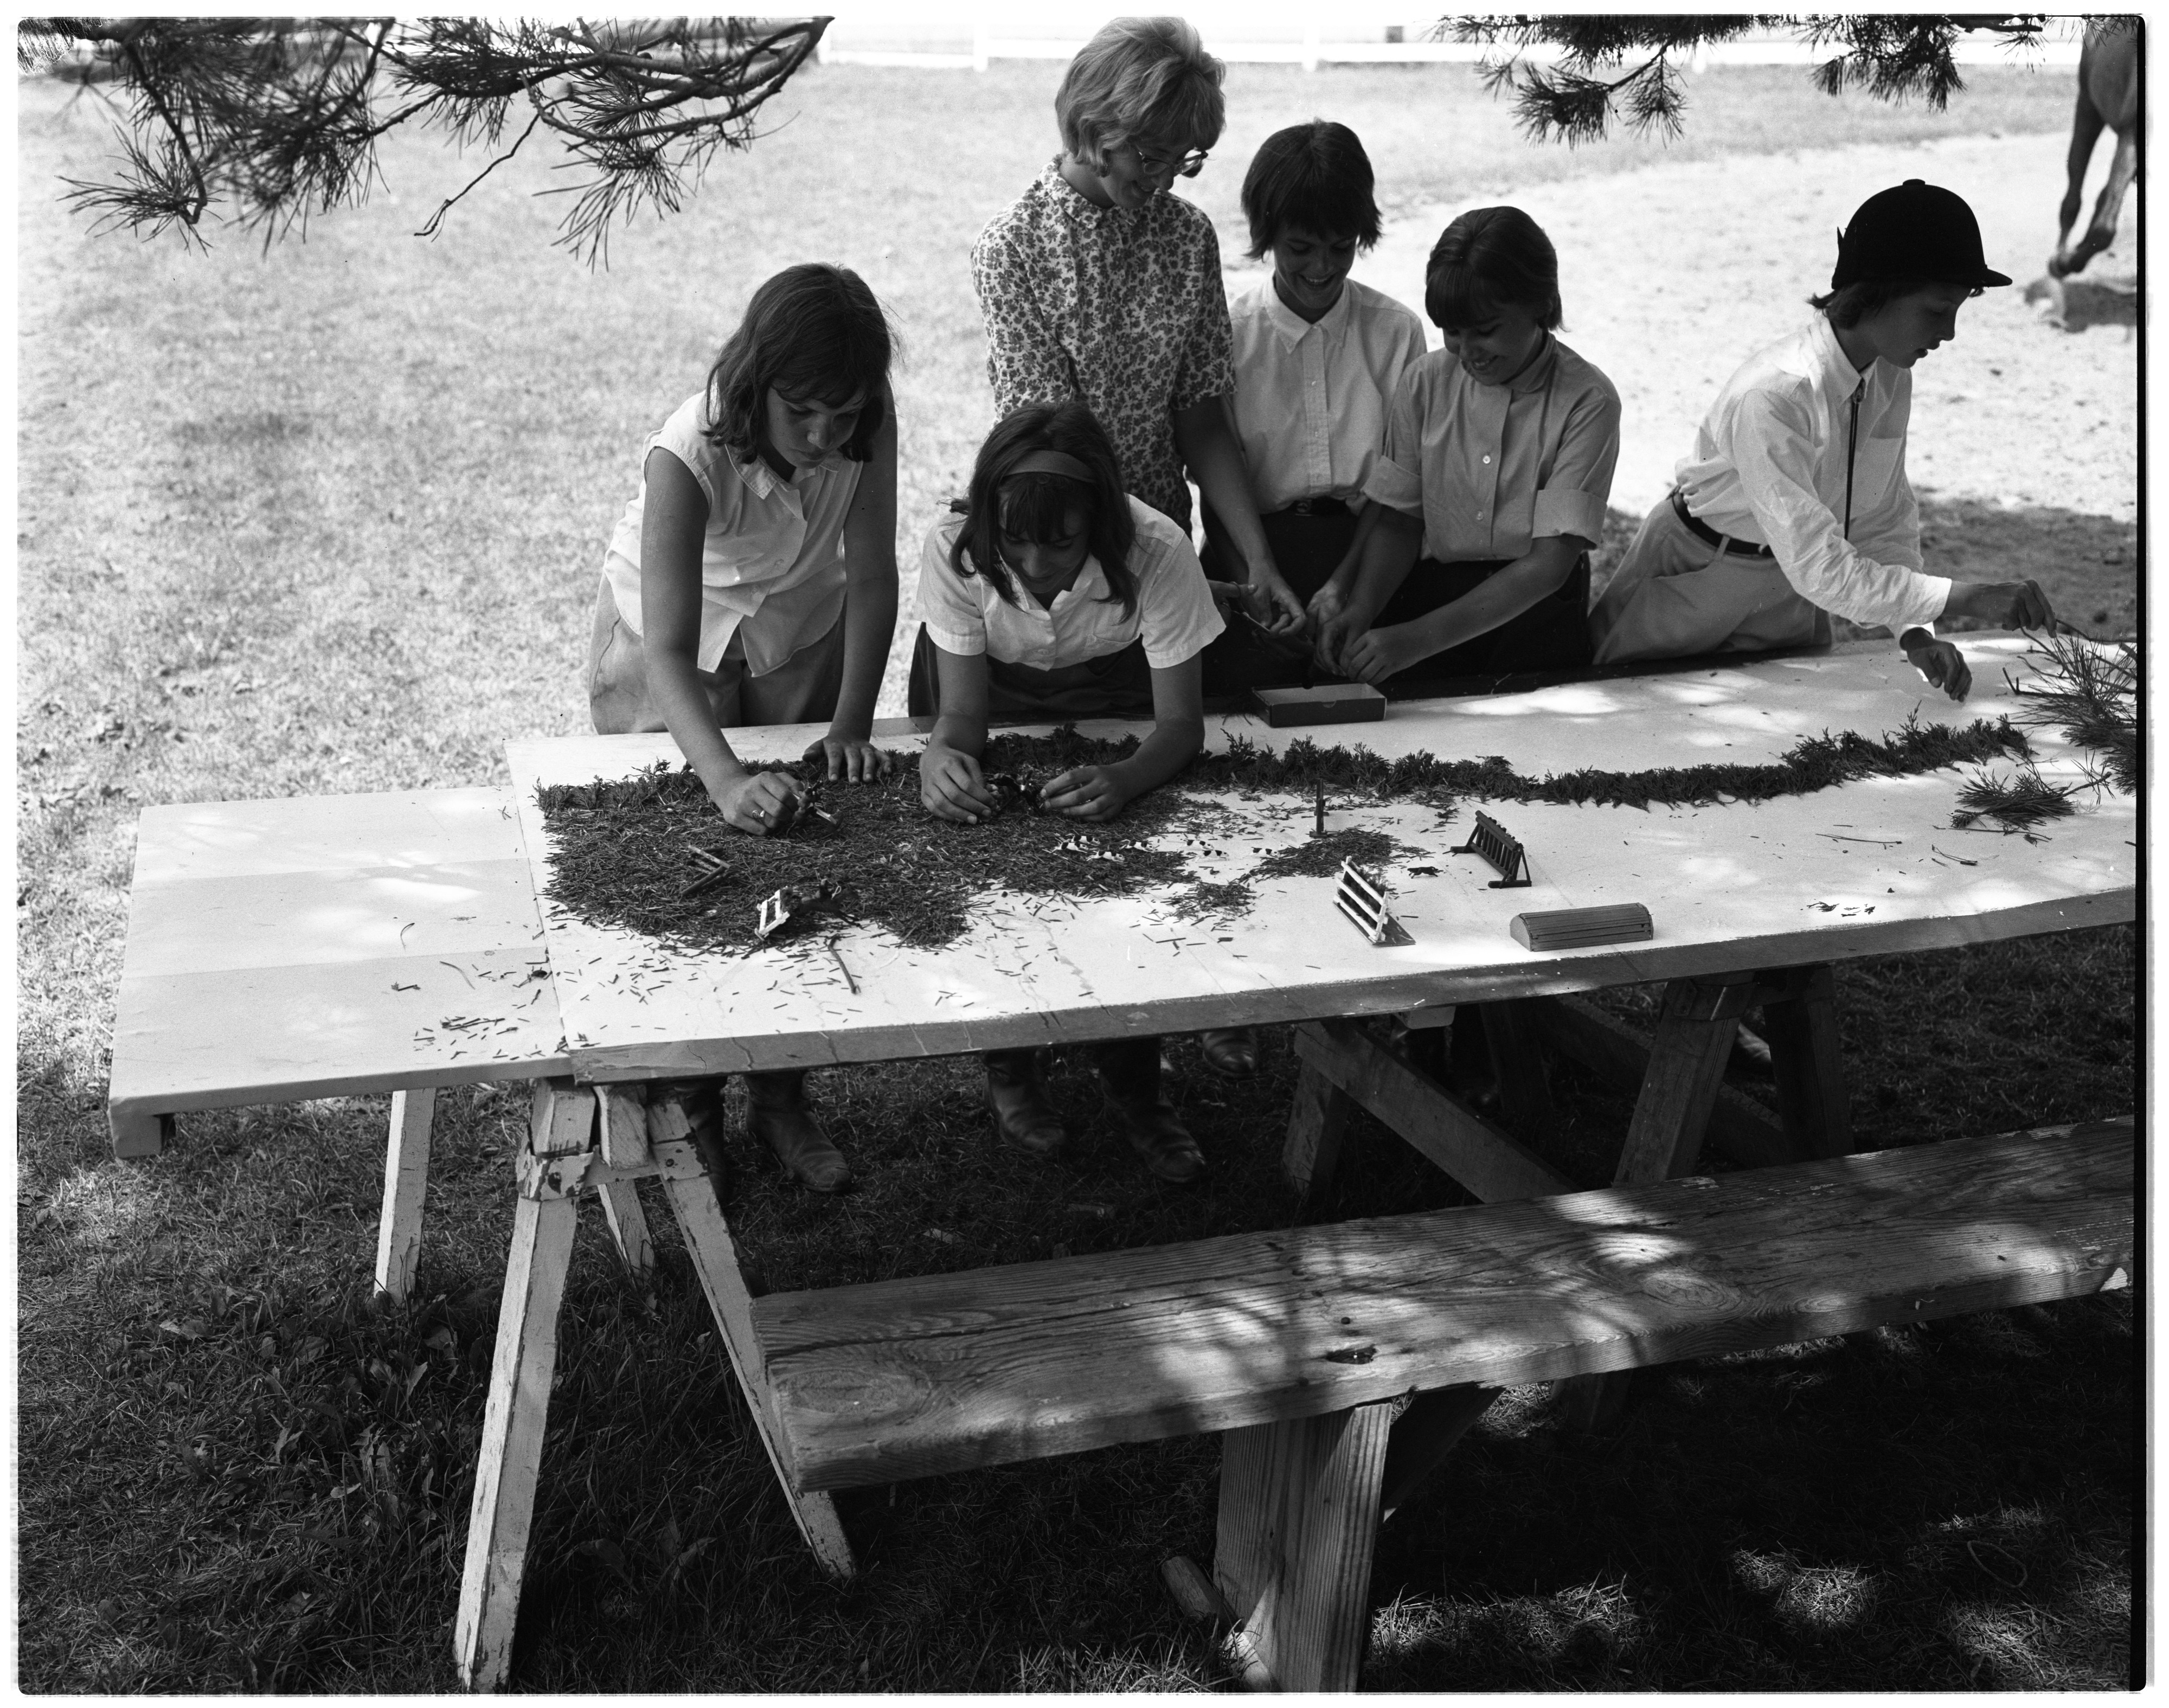 Day Camp Craft Program - Huron River Stables, July 1964 image